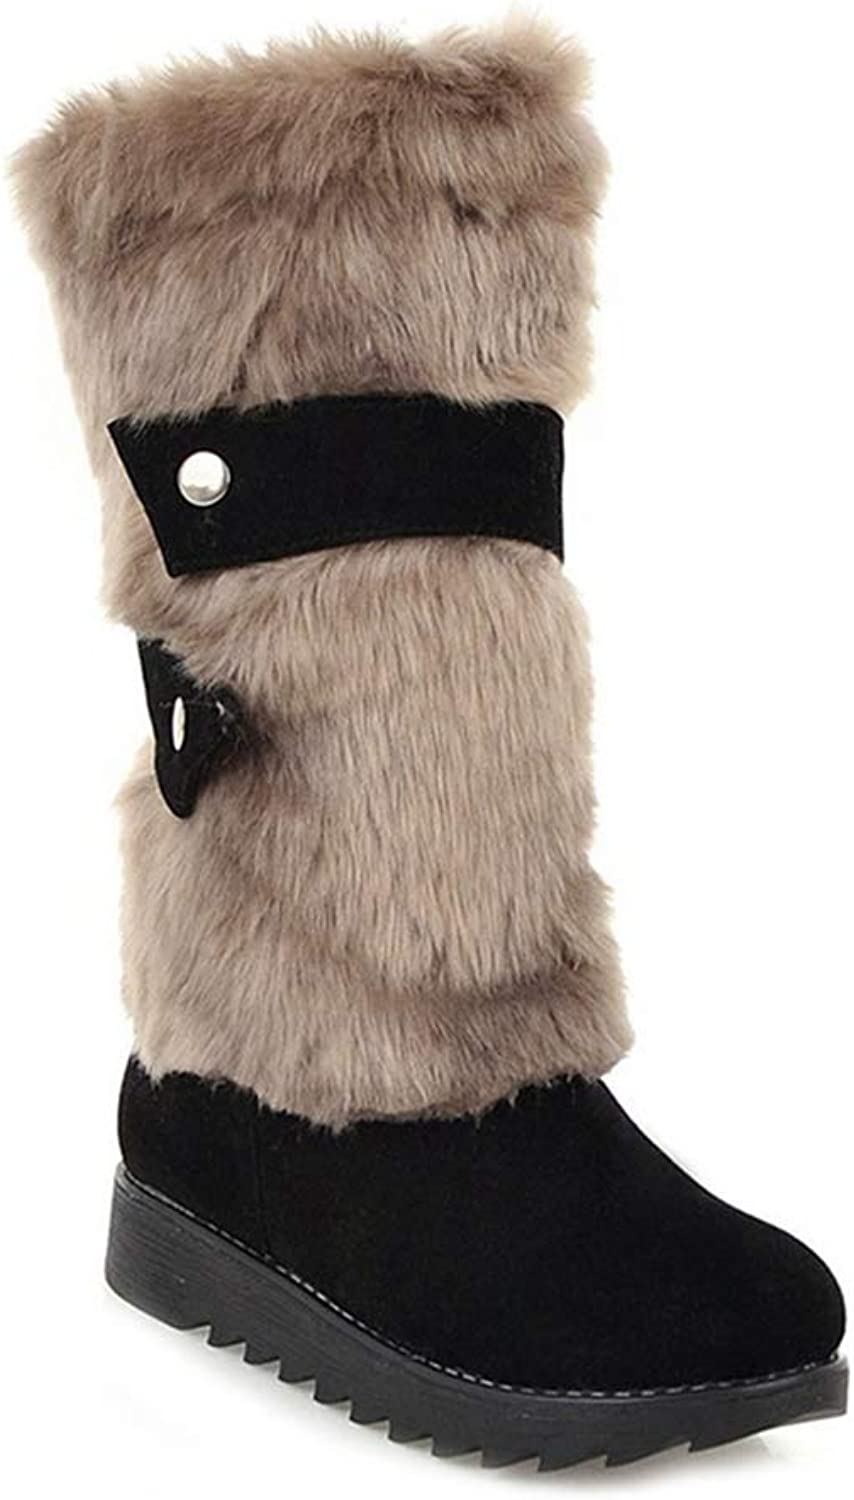 GIY Women's Faux Fur Winter Snow Boots Mid Calf Suede Buckle Slip On Flat Low Heel Wide Warm Snow Boots